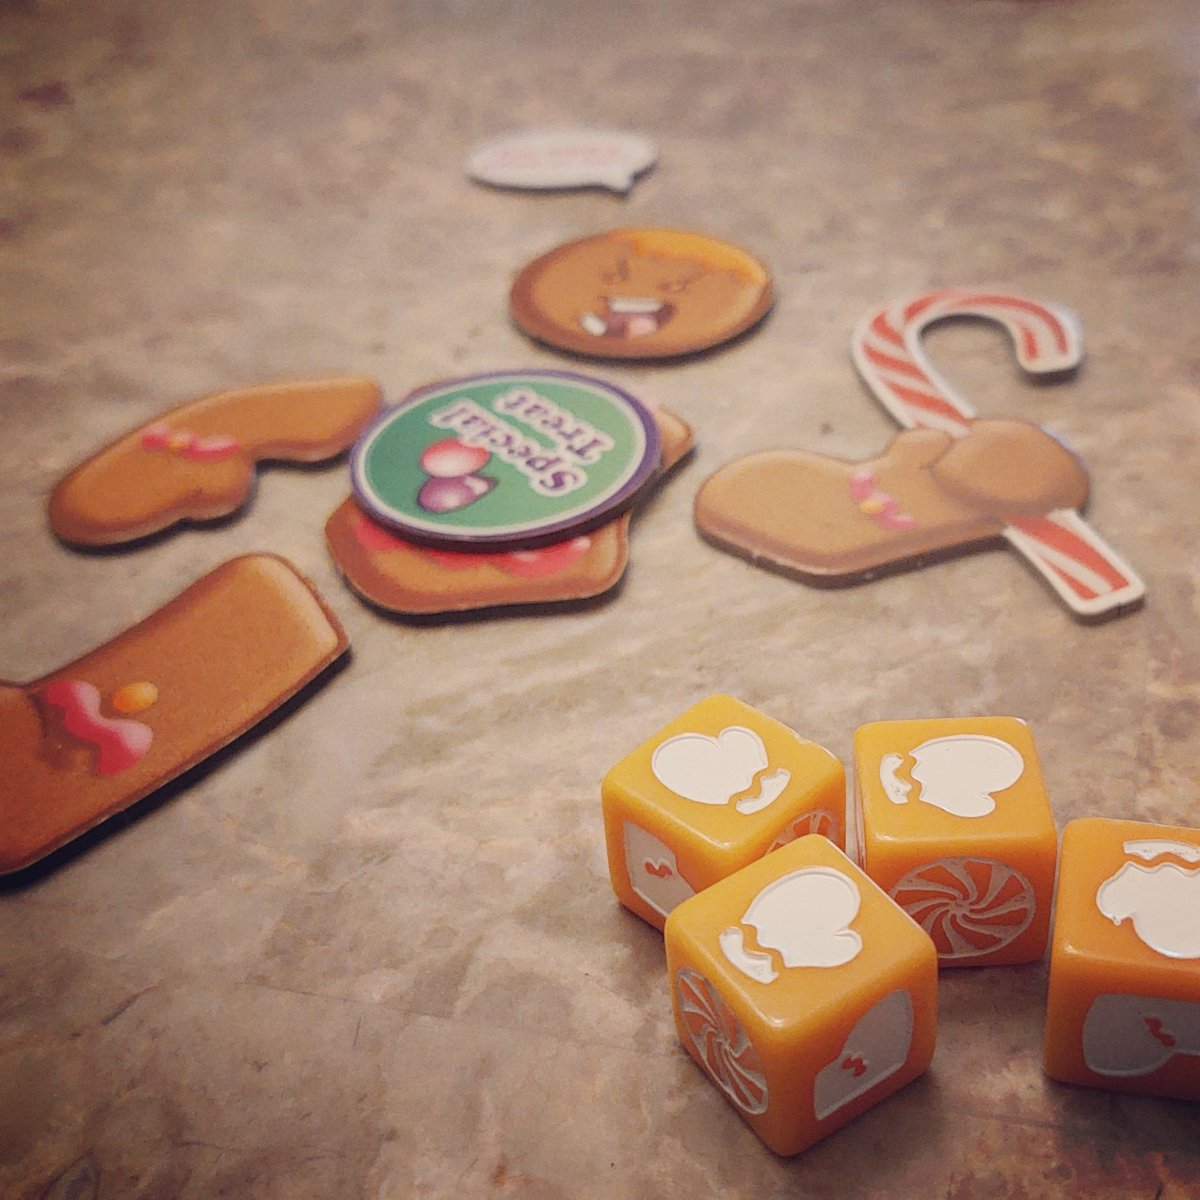 A quick game of Roll For Your Life, Candy Man! Good, crazy, dice-chucking fun!! @SmirkandDagger #boardgames #gamenight #familygames #gamingwithkids #dice #dicegames #rollforyourlife https://t.co/vPkzPmeKso